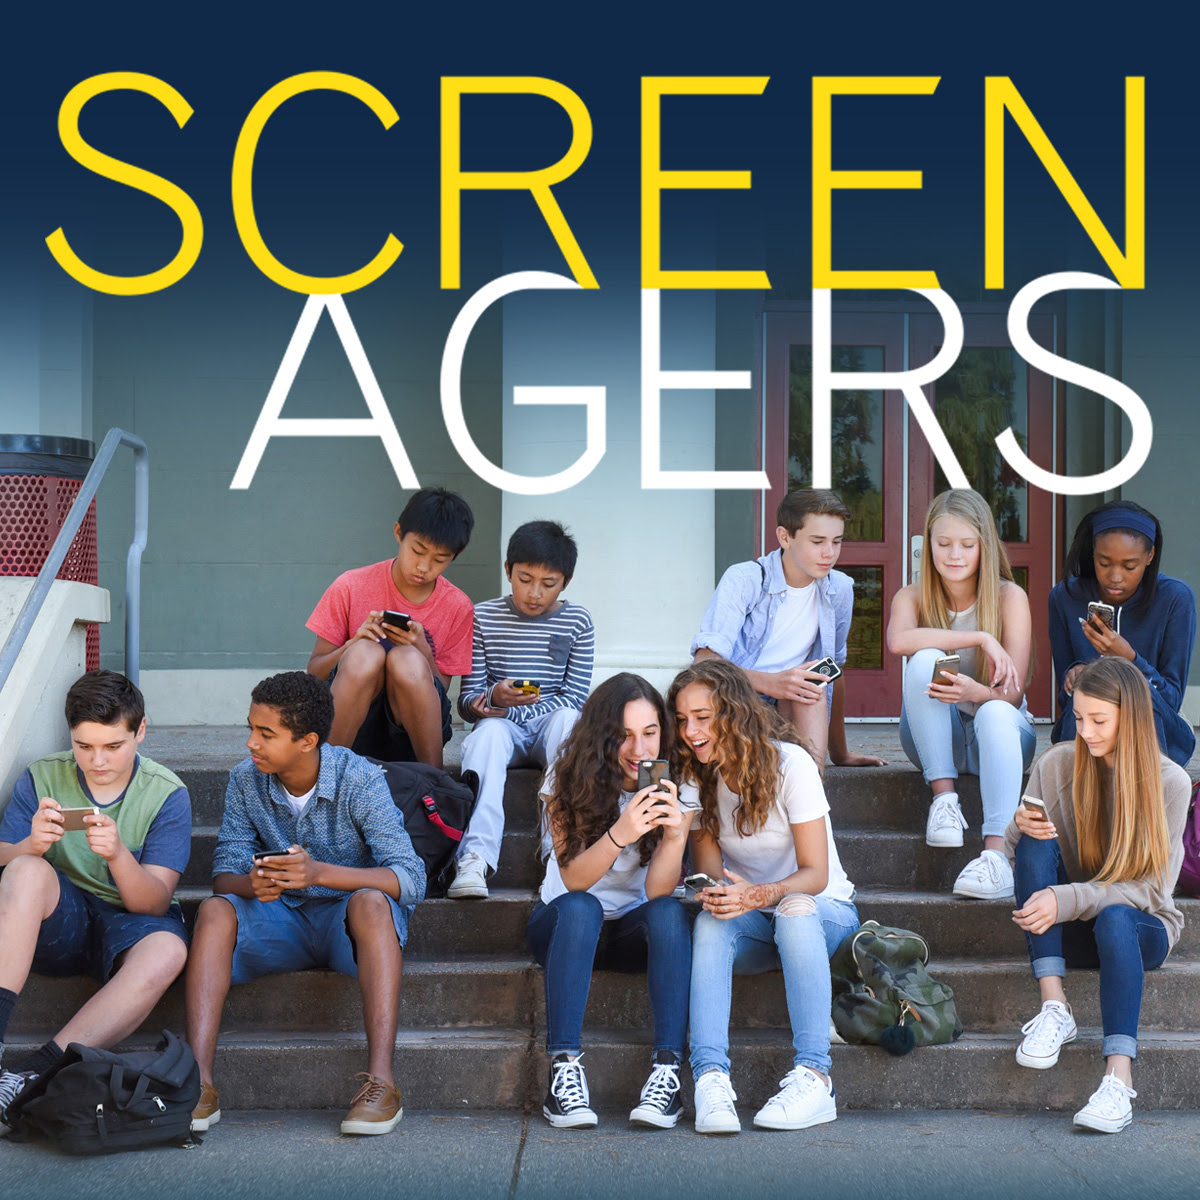 Screenagers Film Presented By Goshen Community Schools and Triple P